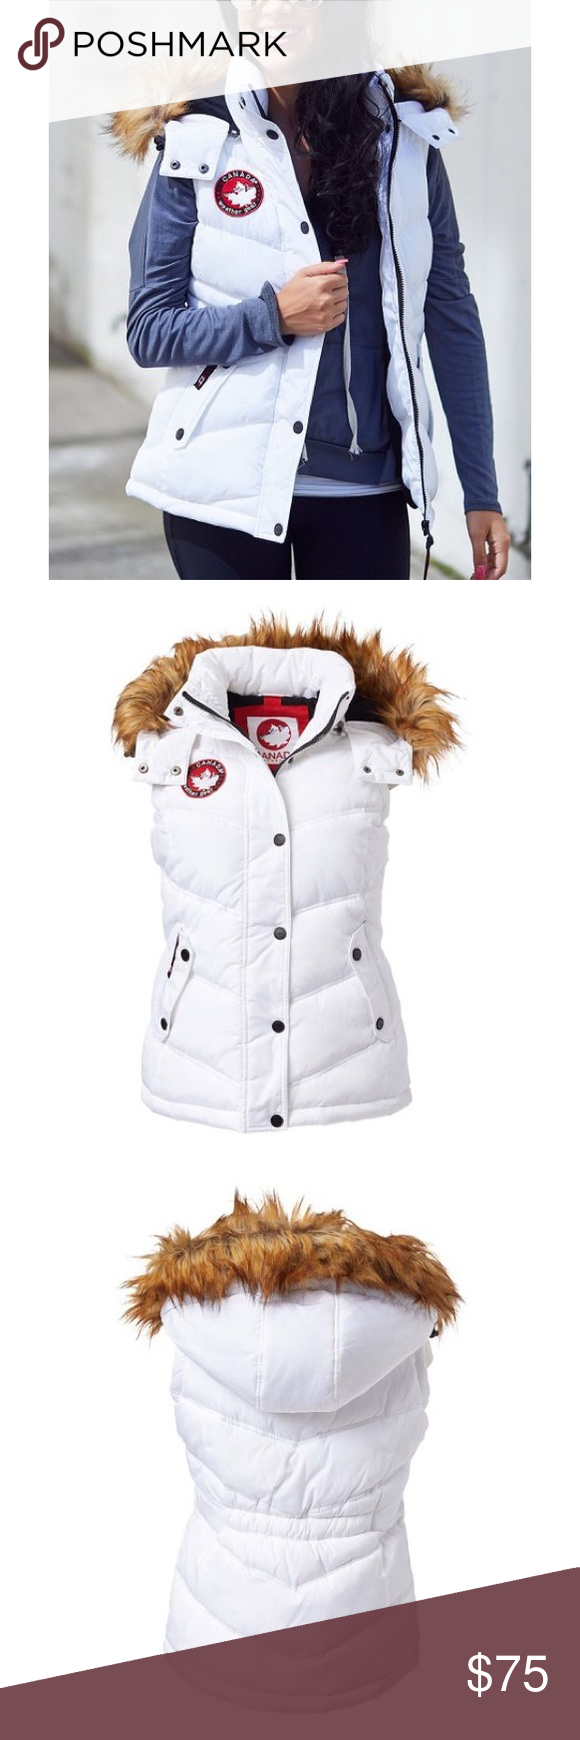 Nwt Canada Weather Gear Hooded Puffer Vest Sz M Clothes Design Puffer Vest How To Wear [ 1740 x 580 Pixel ]